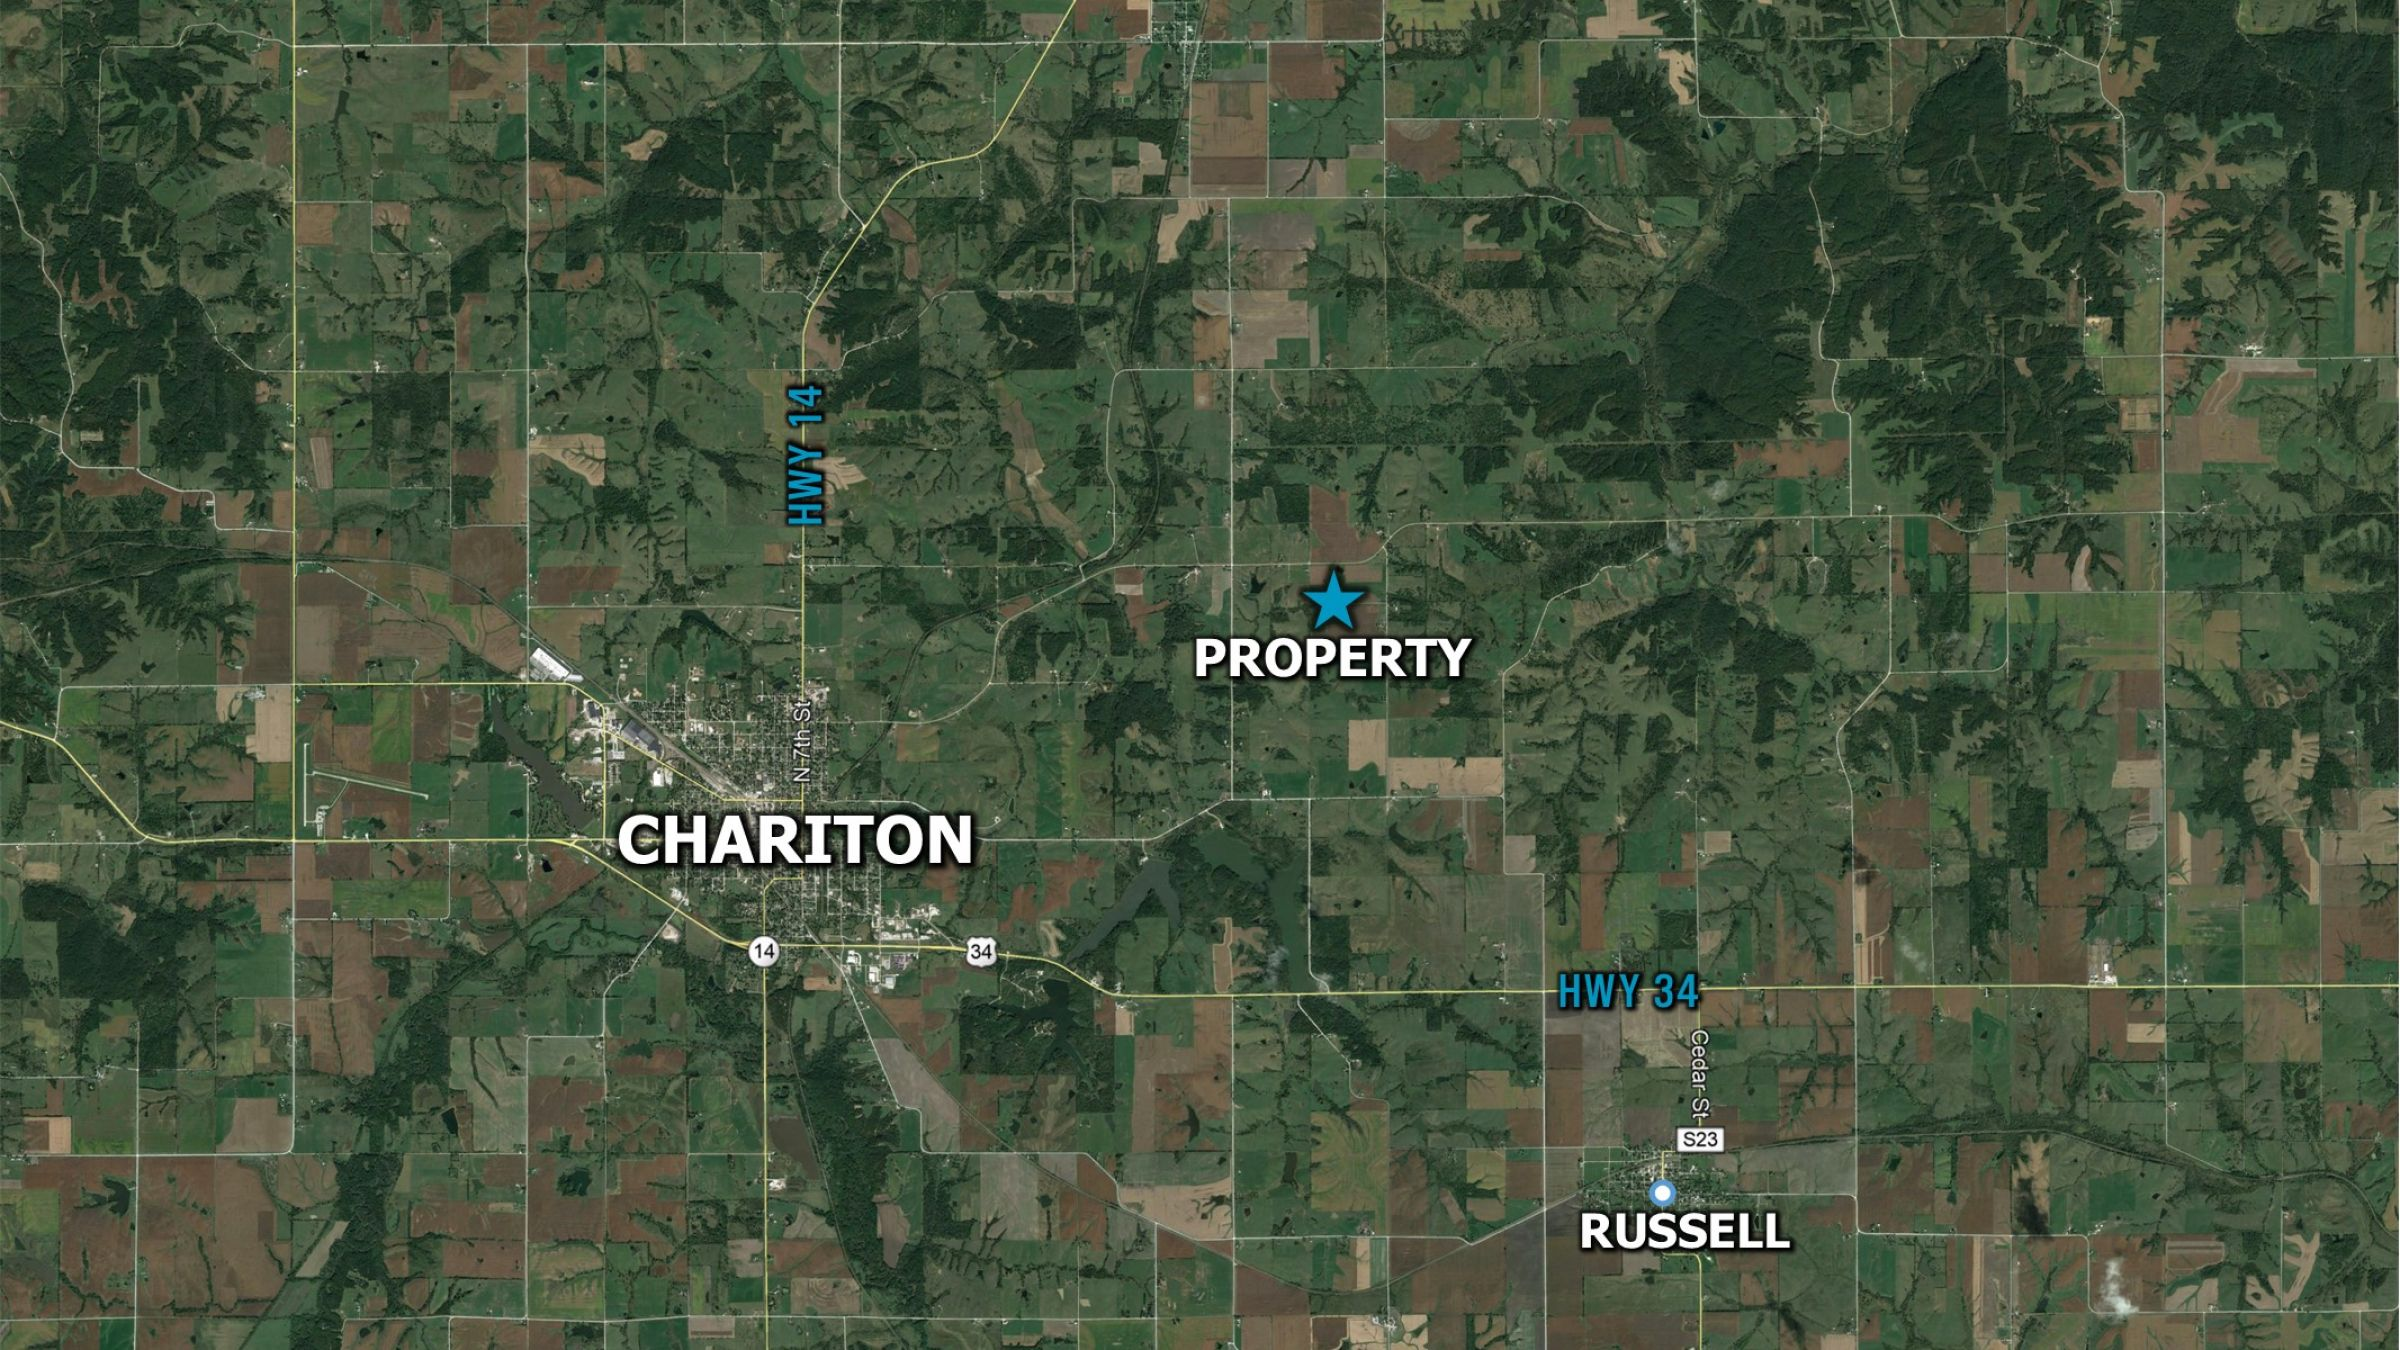 residential-land-lucas-county-iowa-25-acres-listing-number-15402-0-2021-03-10-032021.jpg